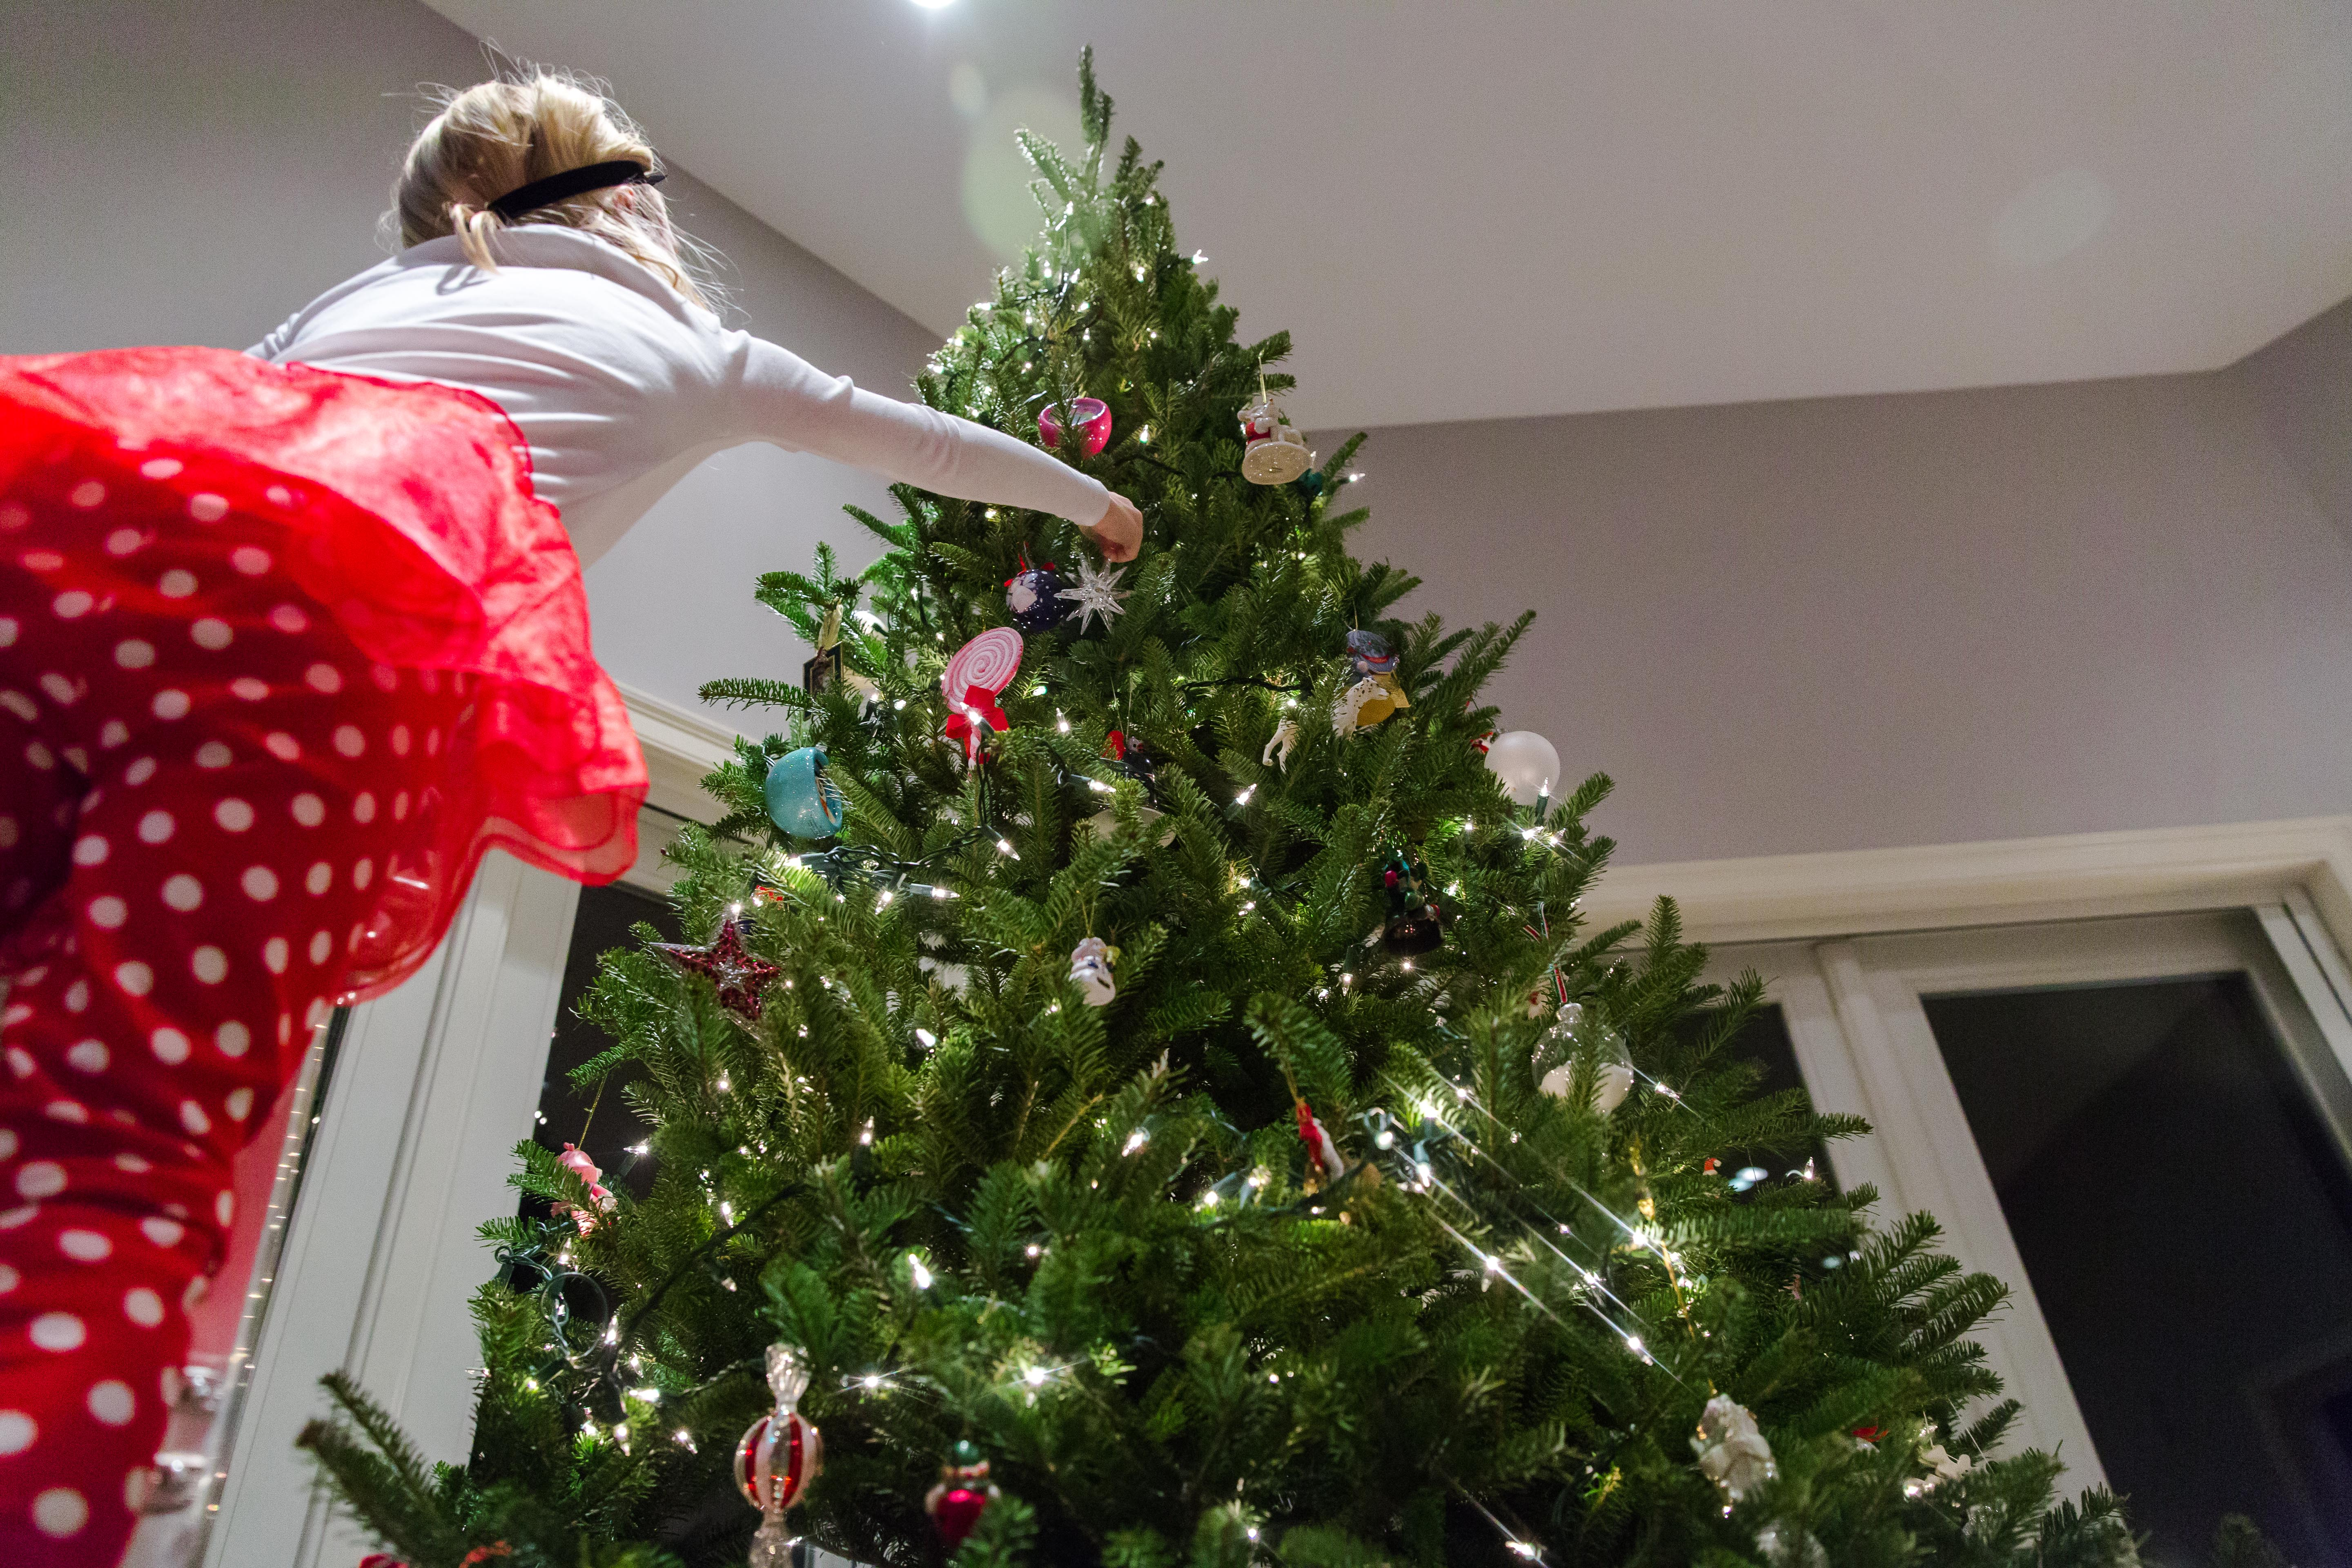 Looking up at little girl hanging silver ornament on Christmas tree